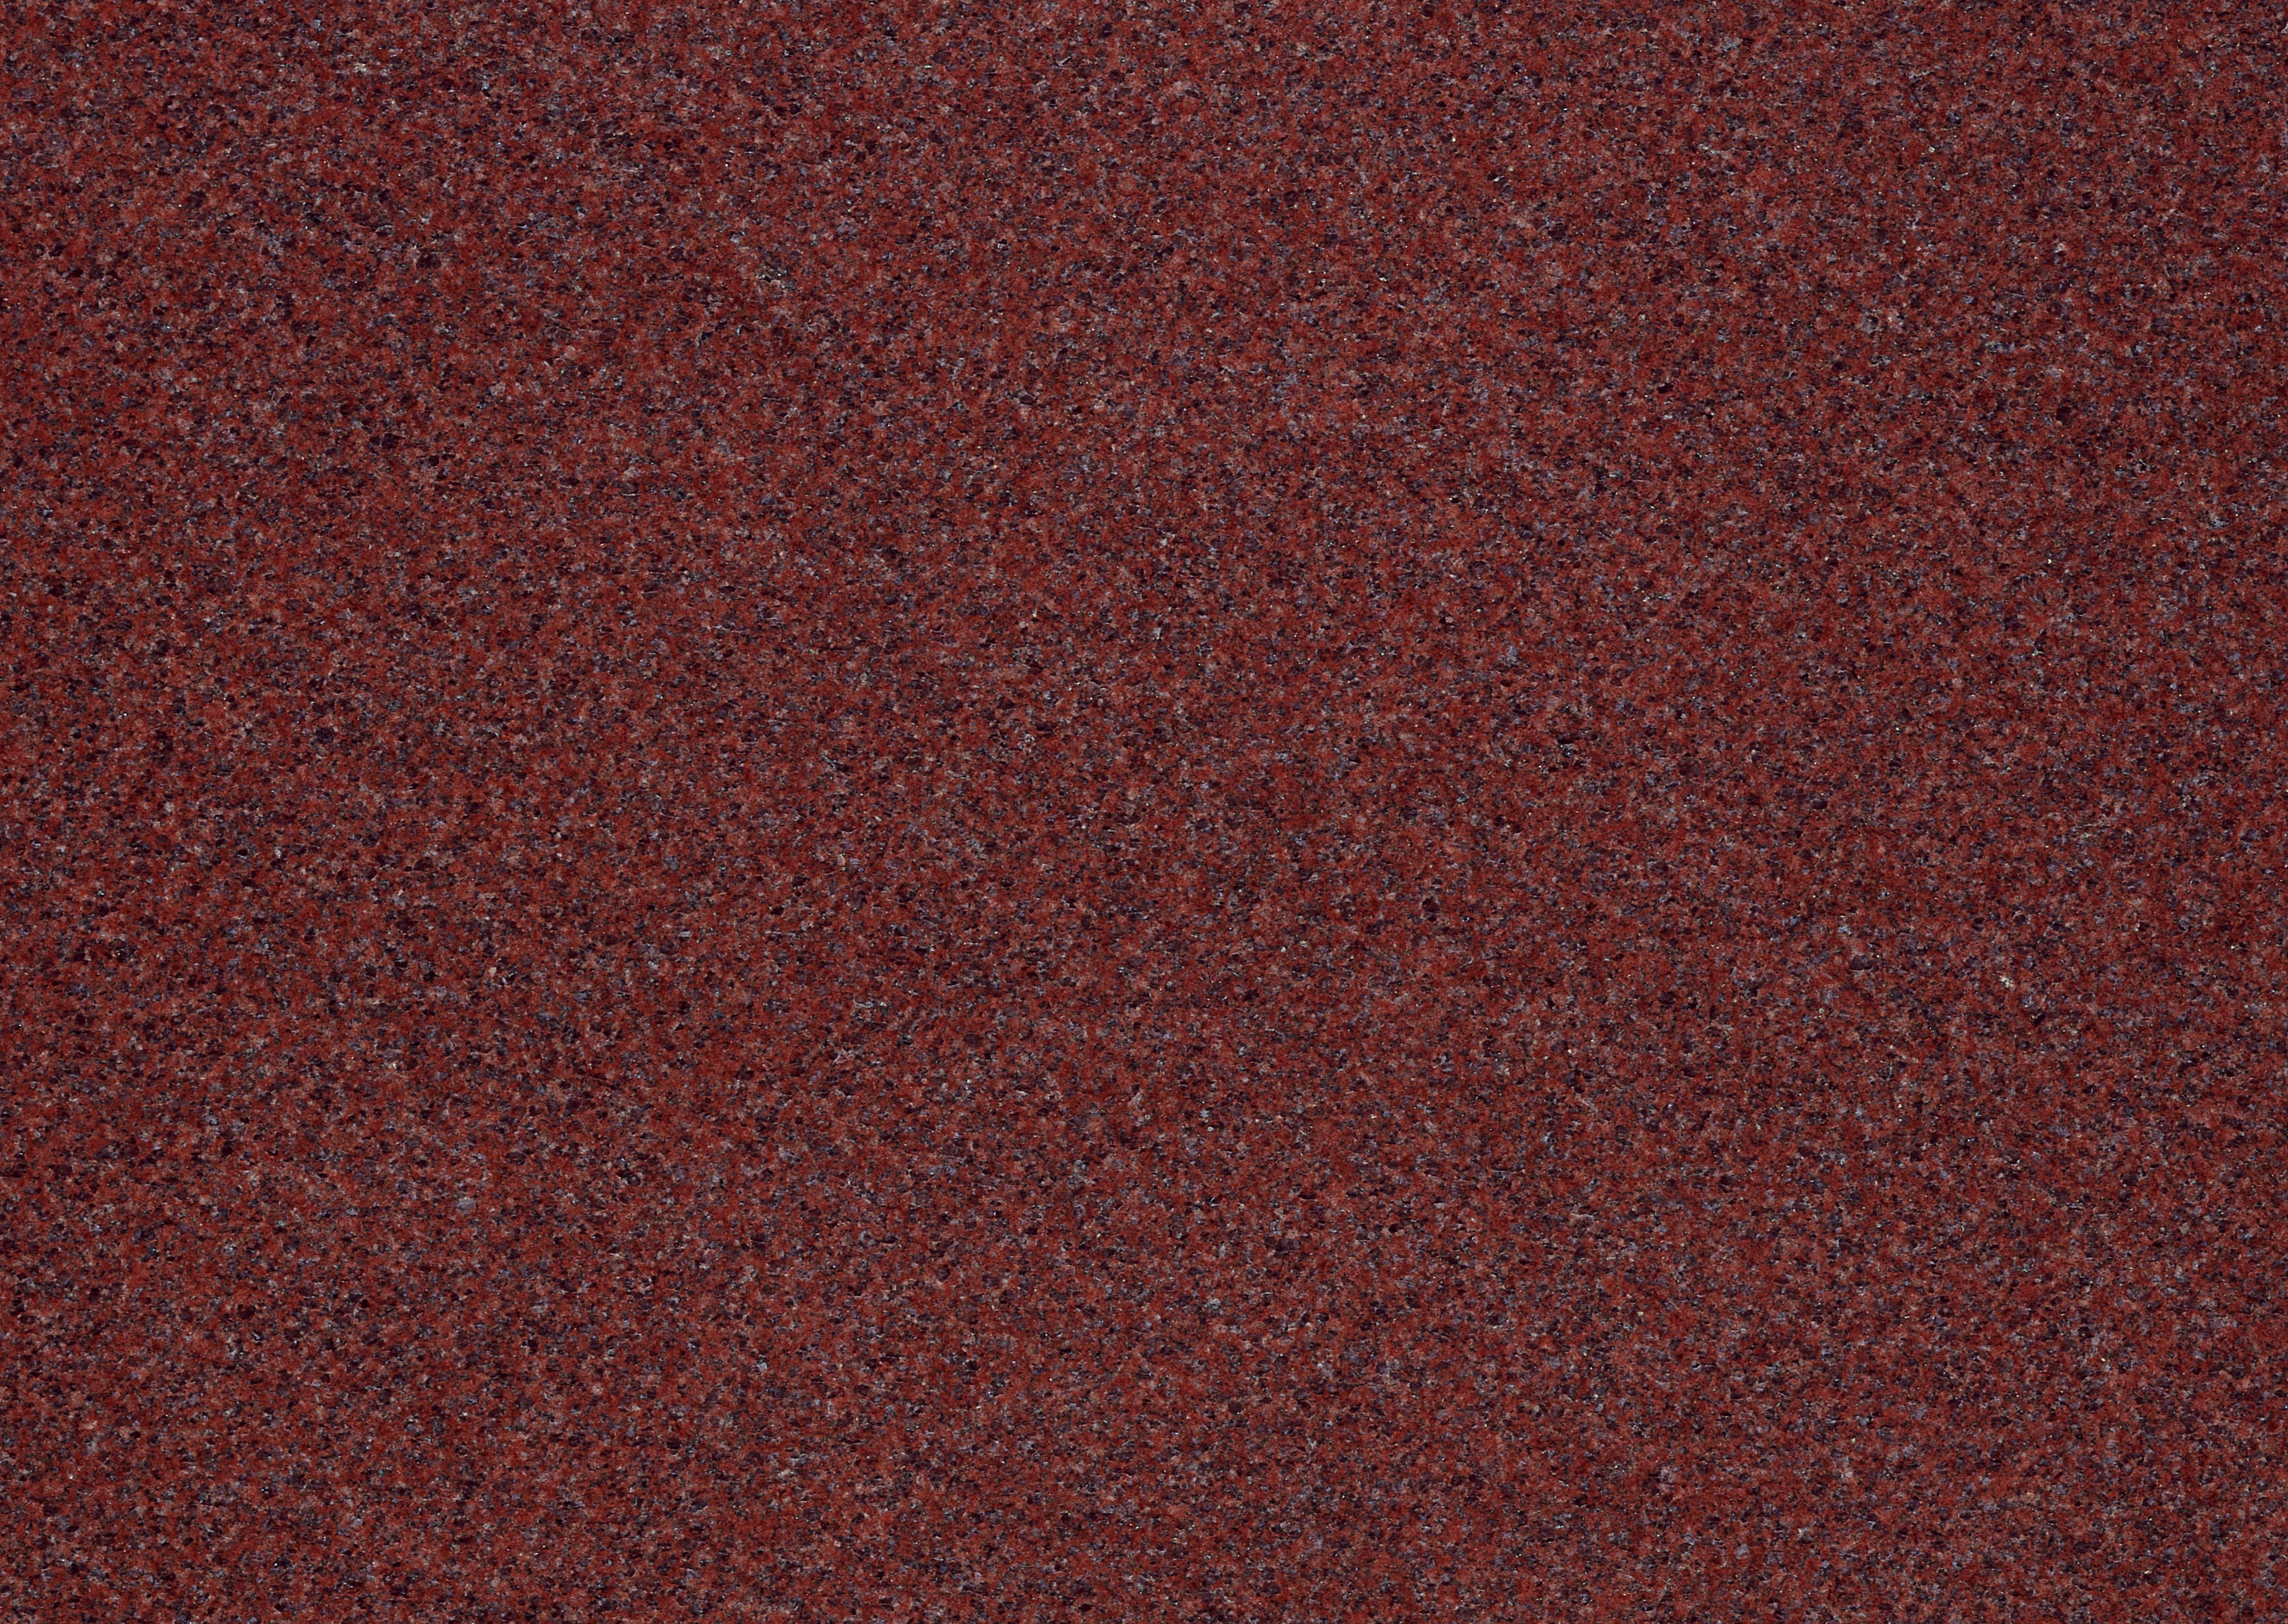 Red granite stone texture background image